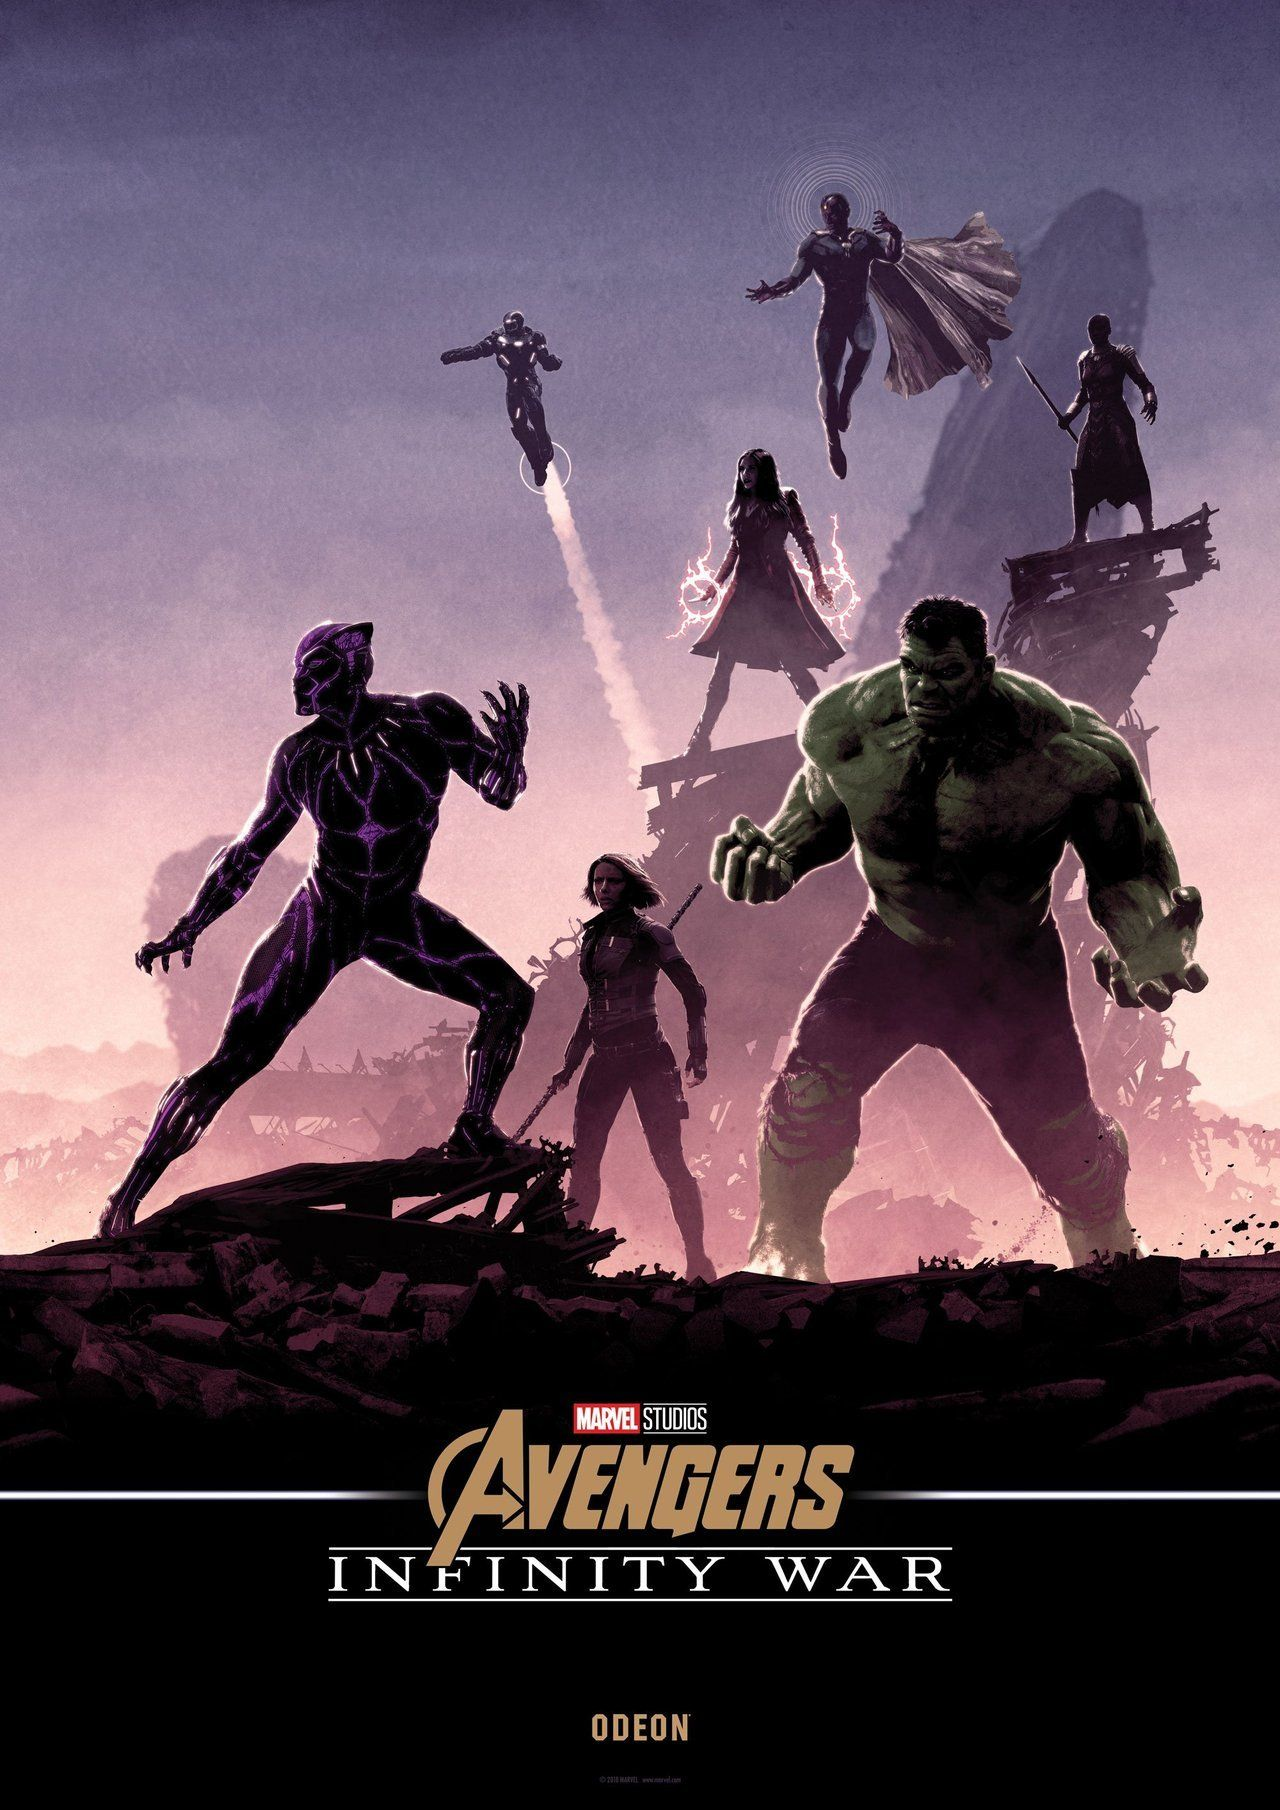 Avengers Infinity War Exclusive Posters By Matt Ferguson Avengers Marvel Posters Avengers Infinity War